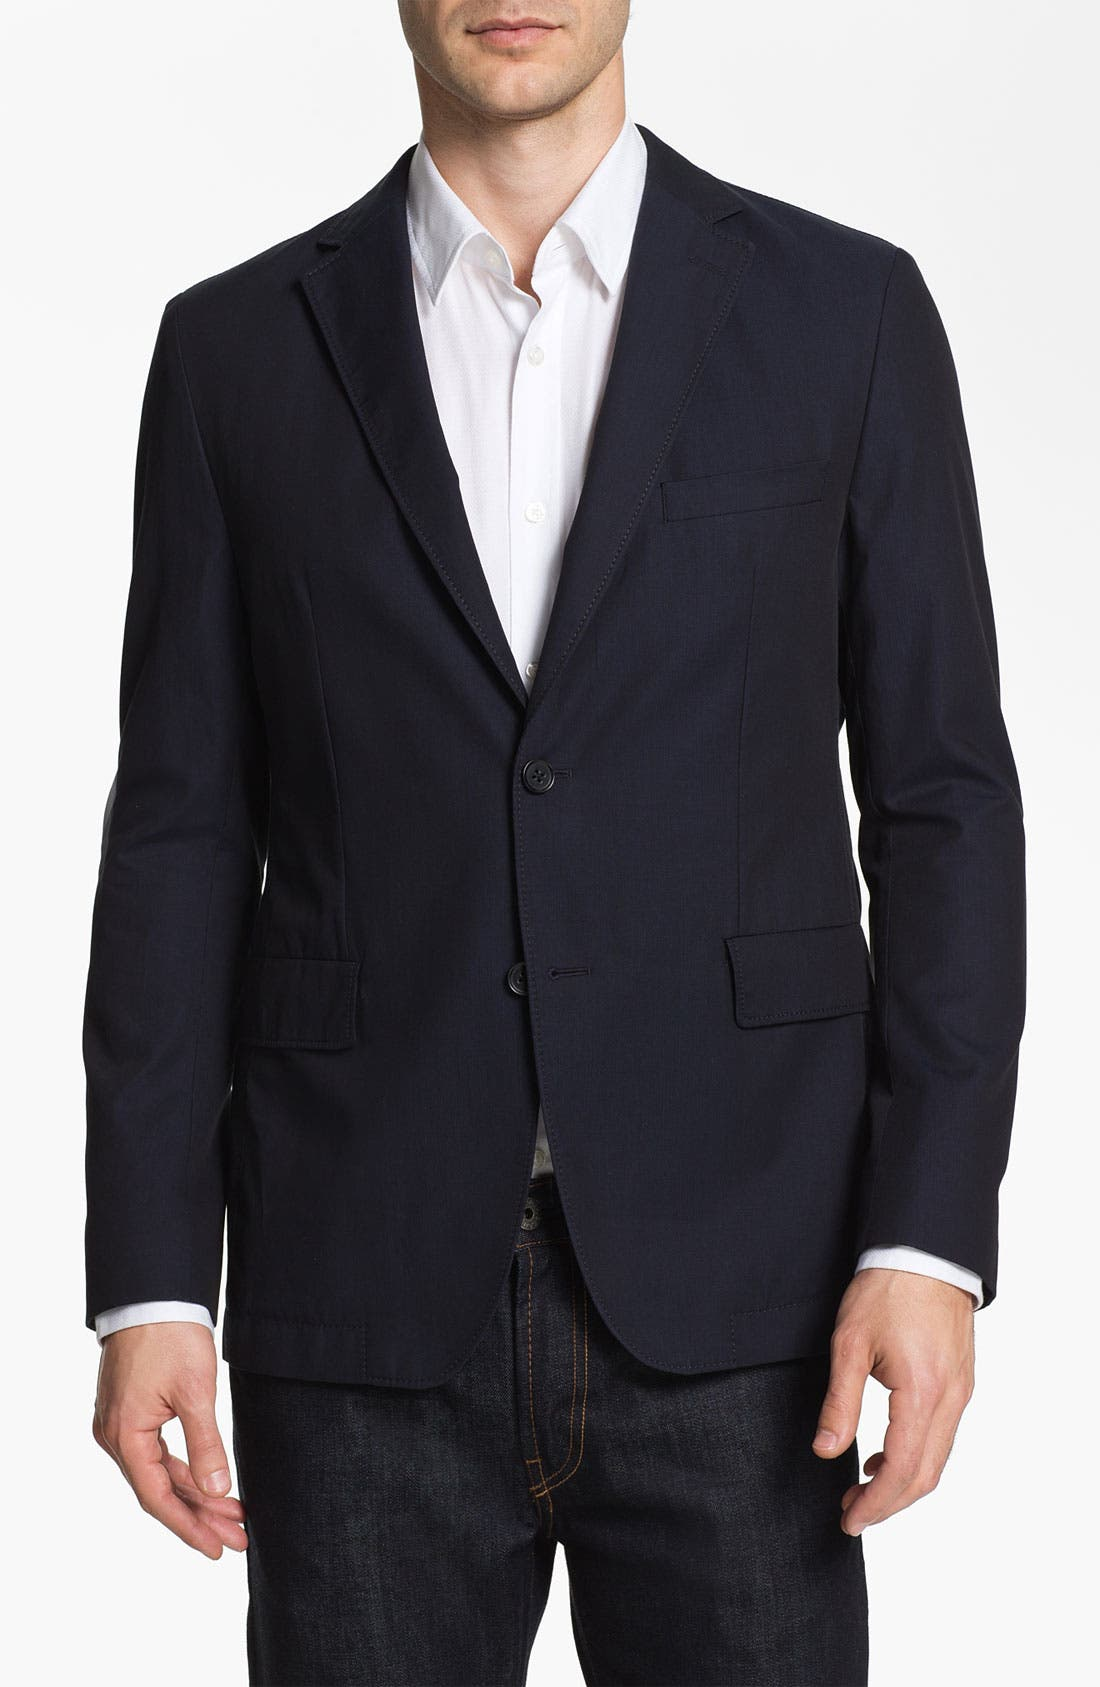 Alternate Image 1 Selected - BOSS Black 'Micah' Sportcoat